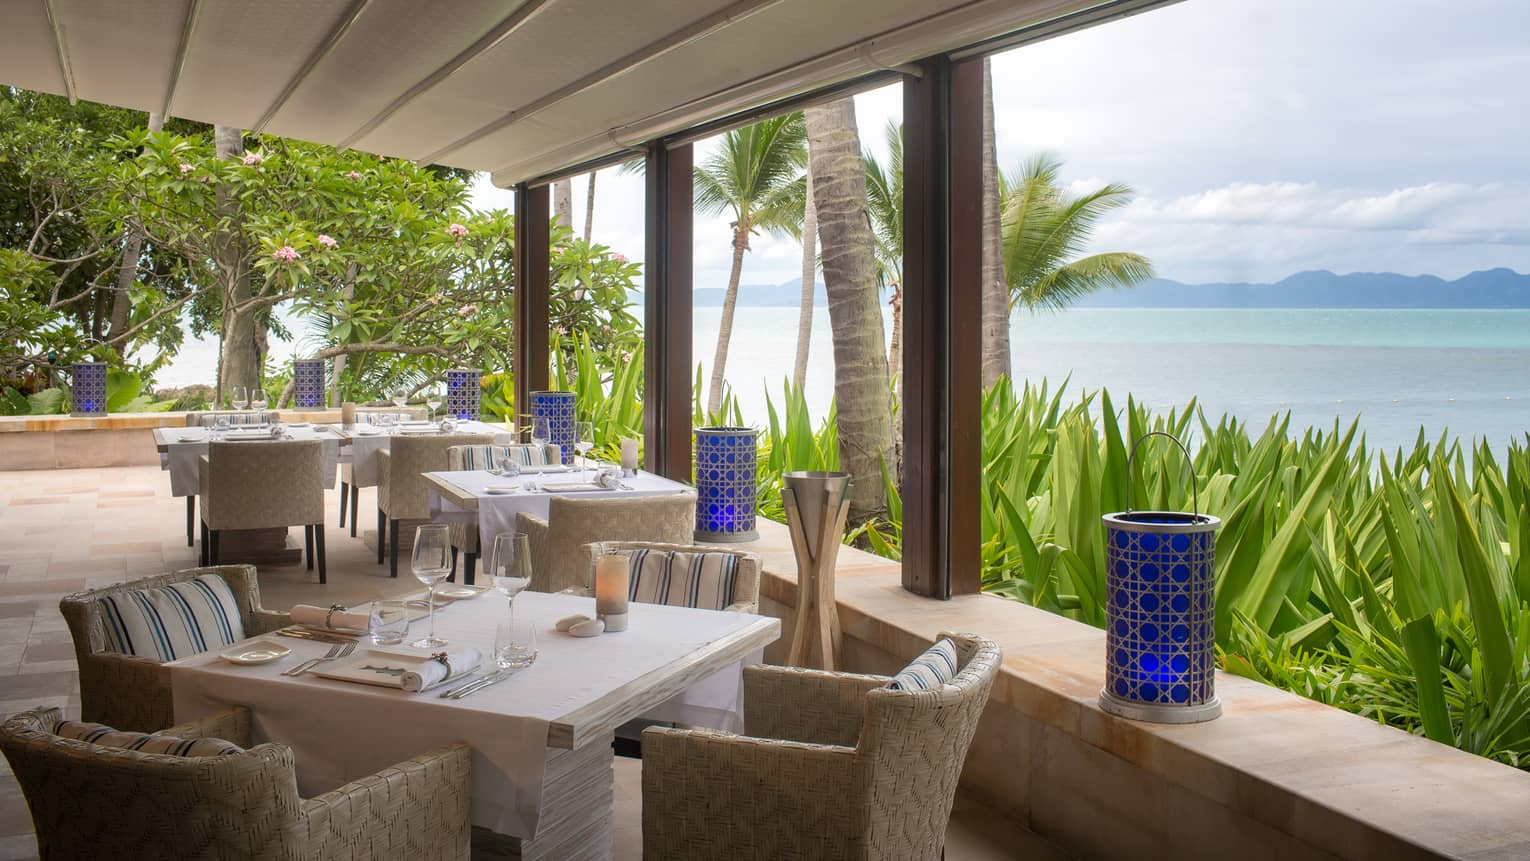 square tables overlooking the ocean are set for dinner